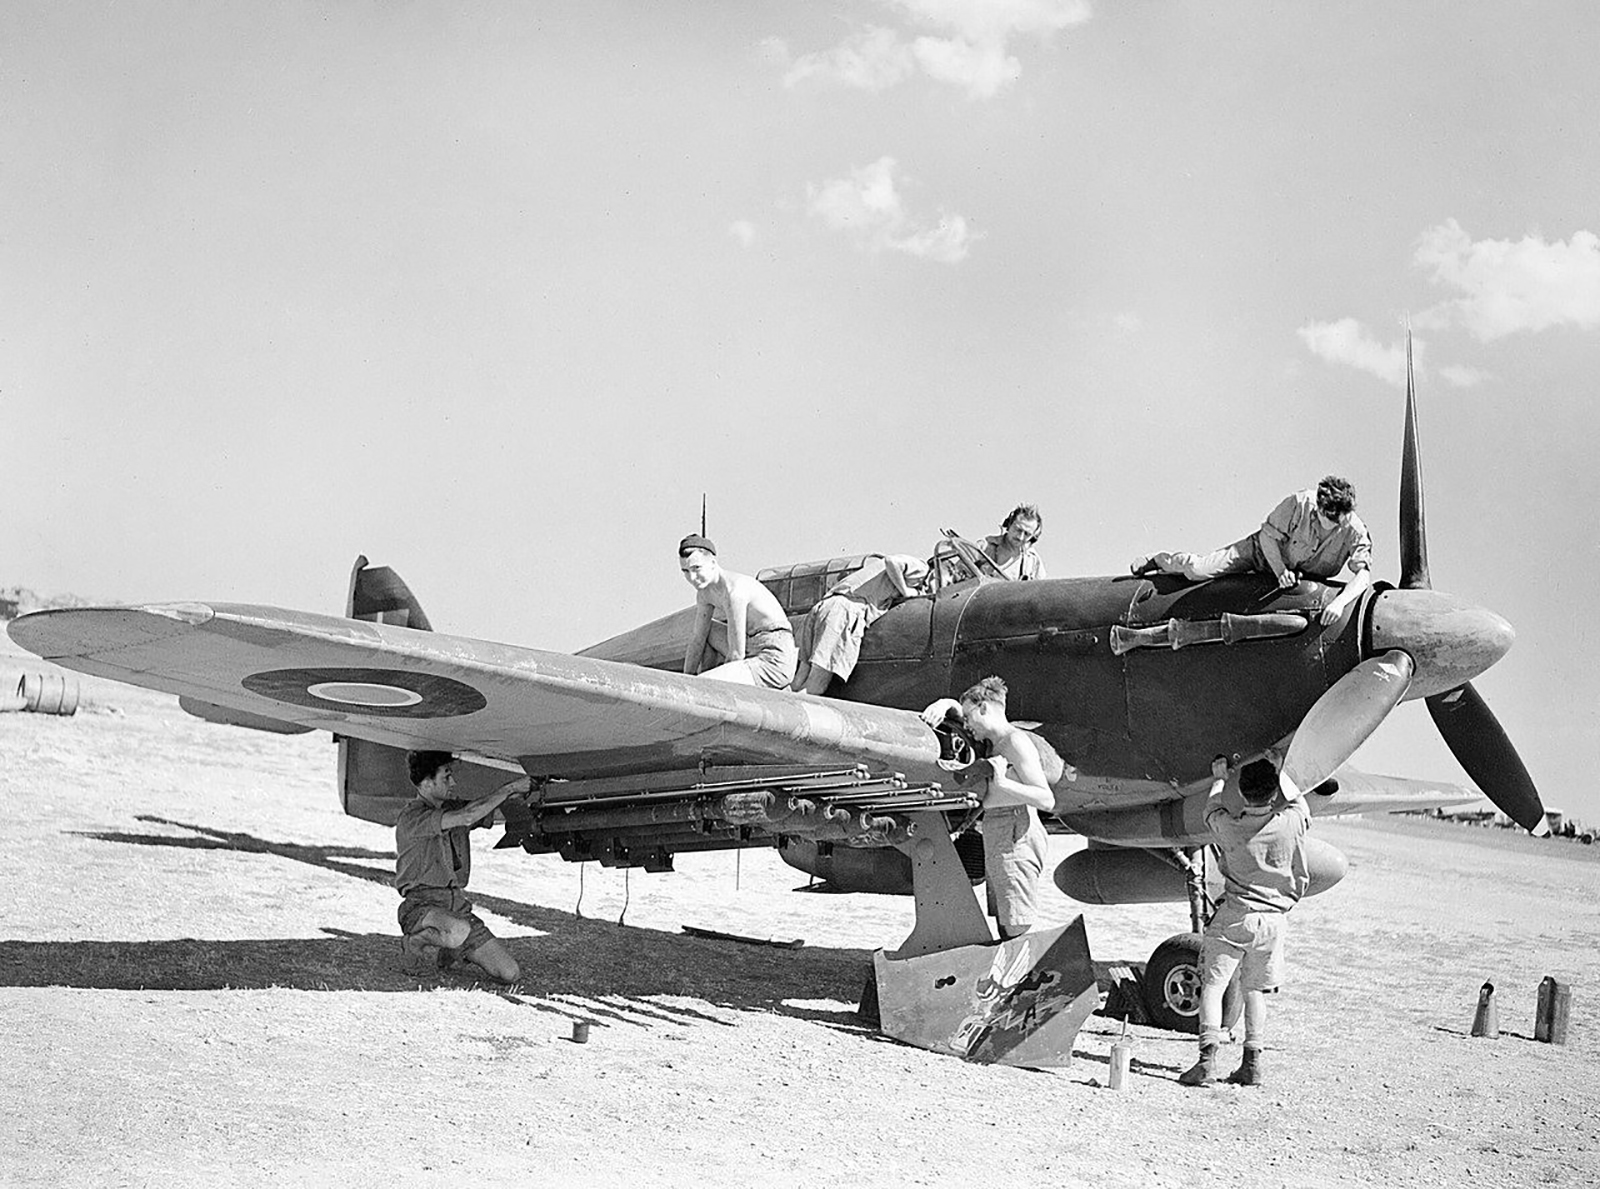 Hawker Hurricane IV RAF 6Sqn being serviced on an airfield in Italy probably Foggia 01